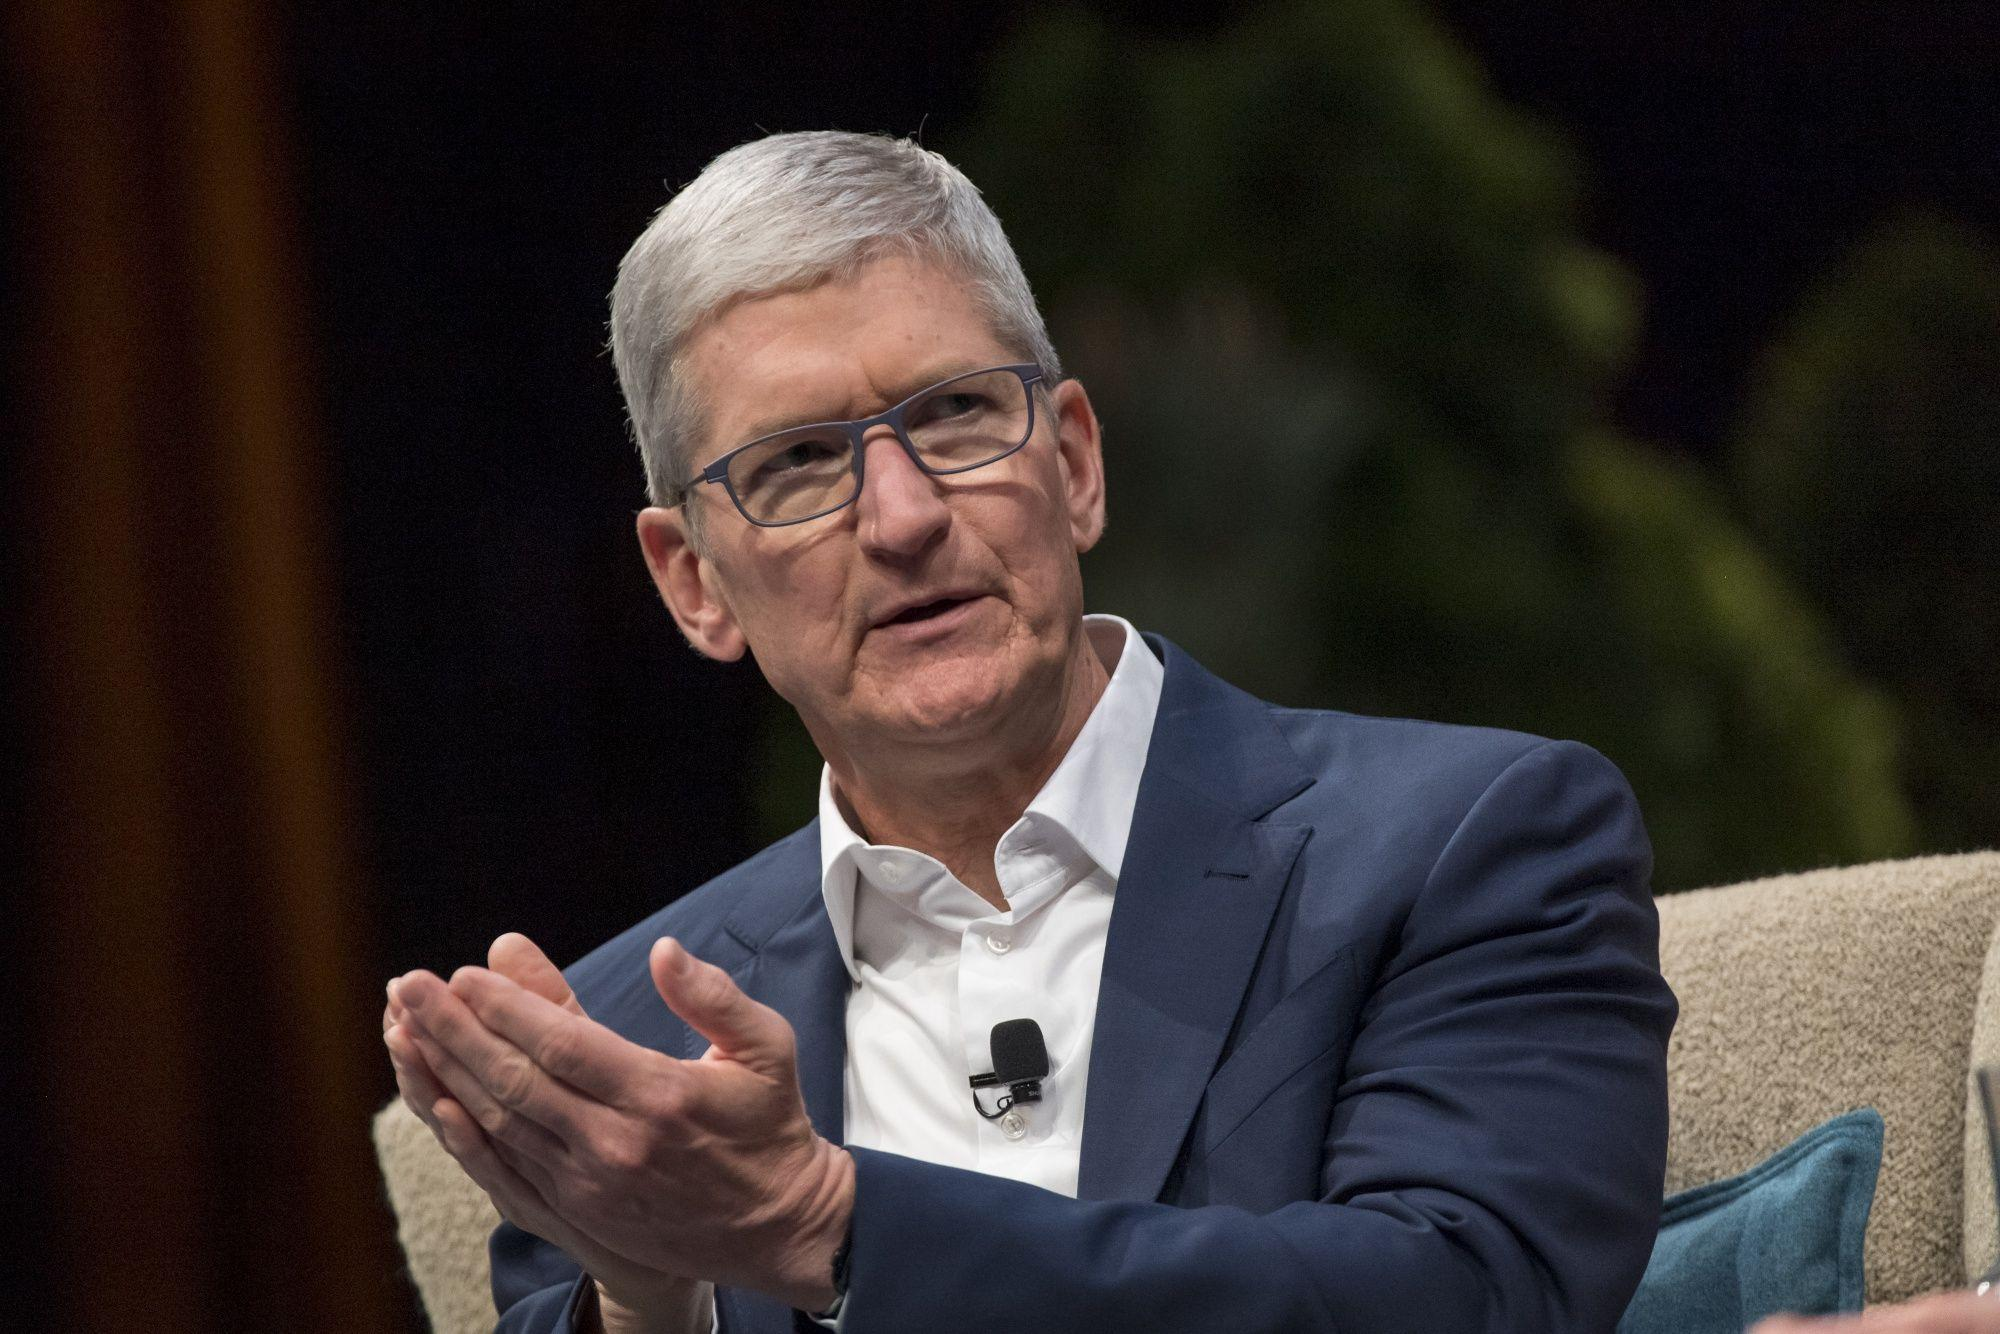 Apple's Tim Cook Sees Minor Supply Chain Changes in Wake of Virus